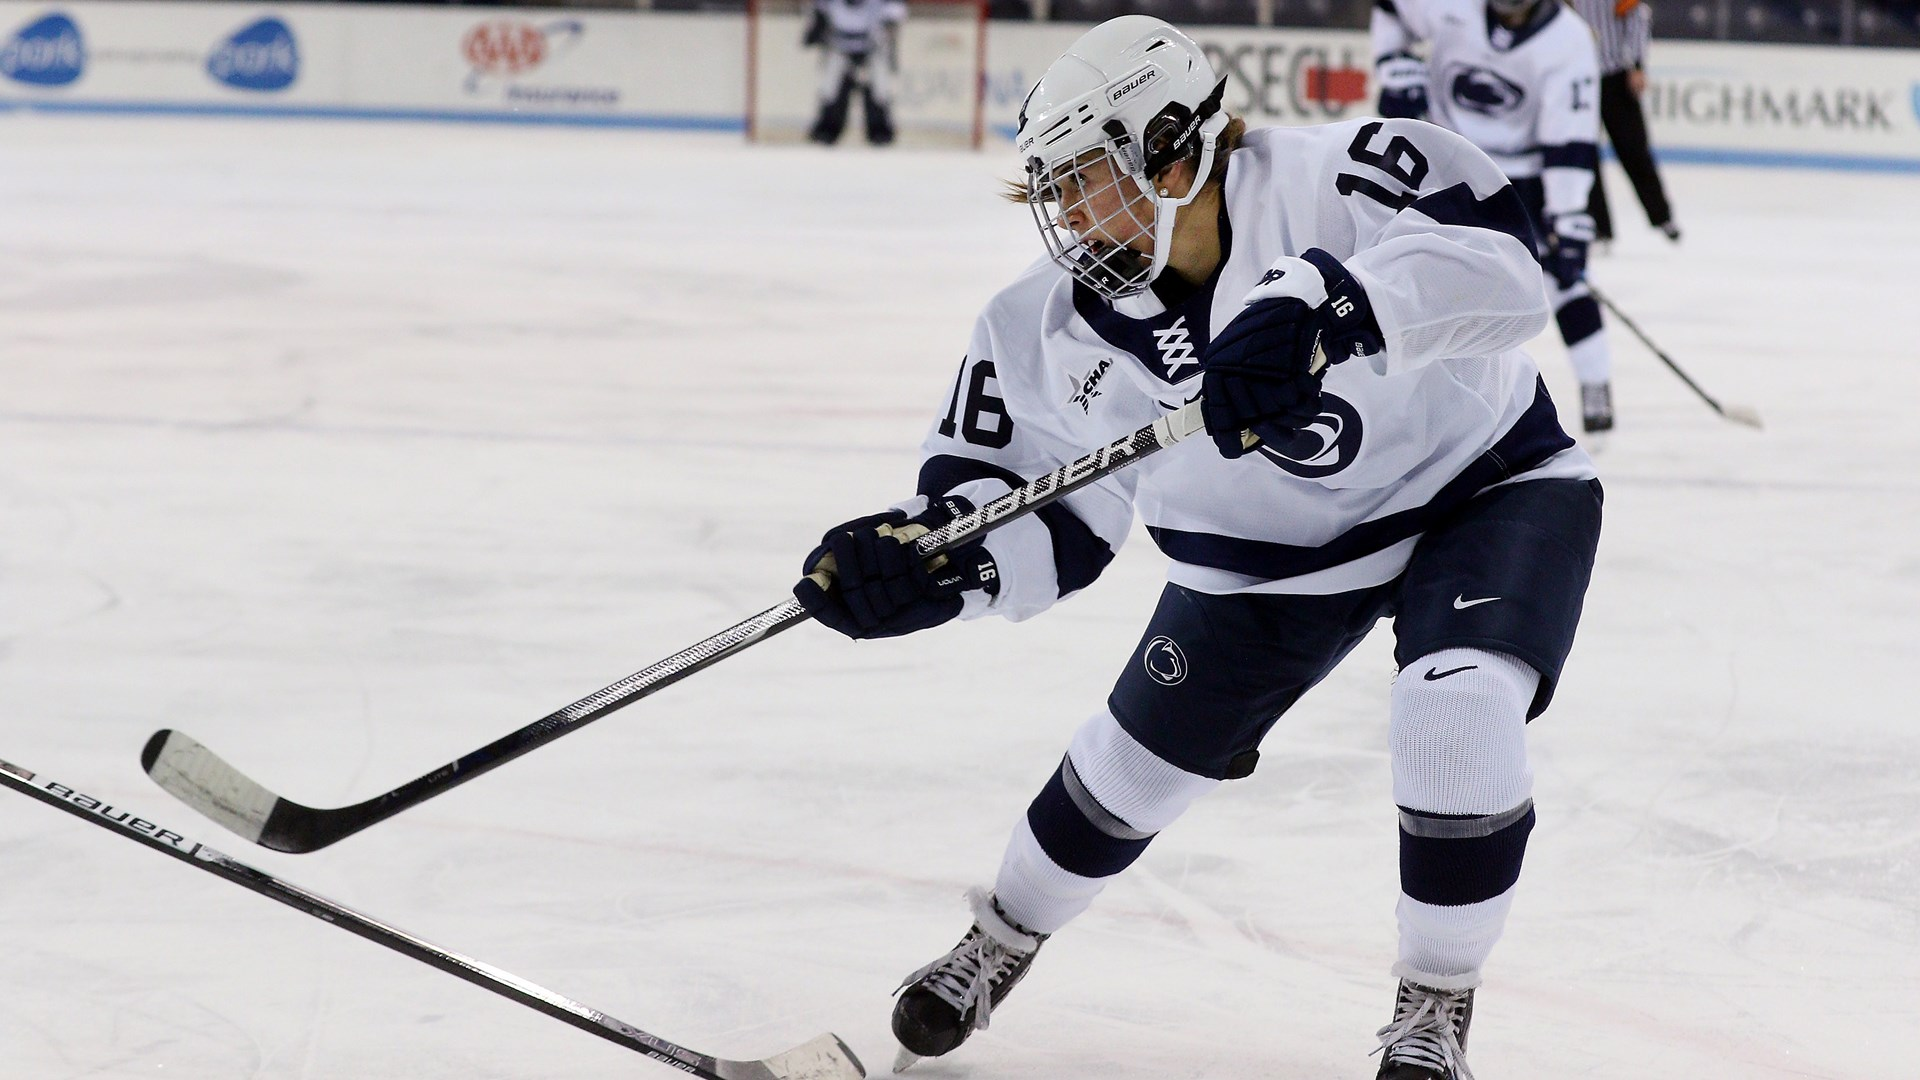 Nittany Lions Drop Tight Battle In OT To Providence - Penn